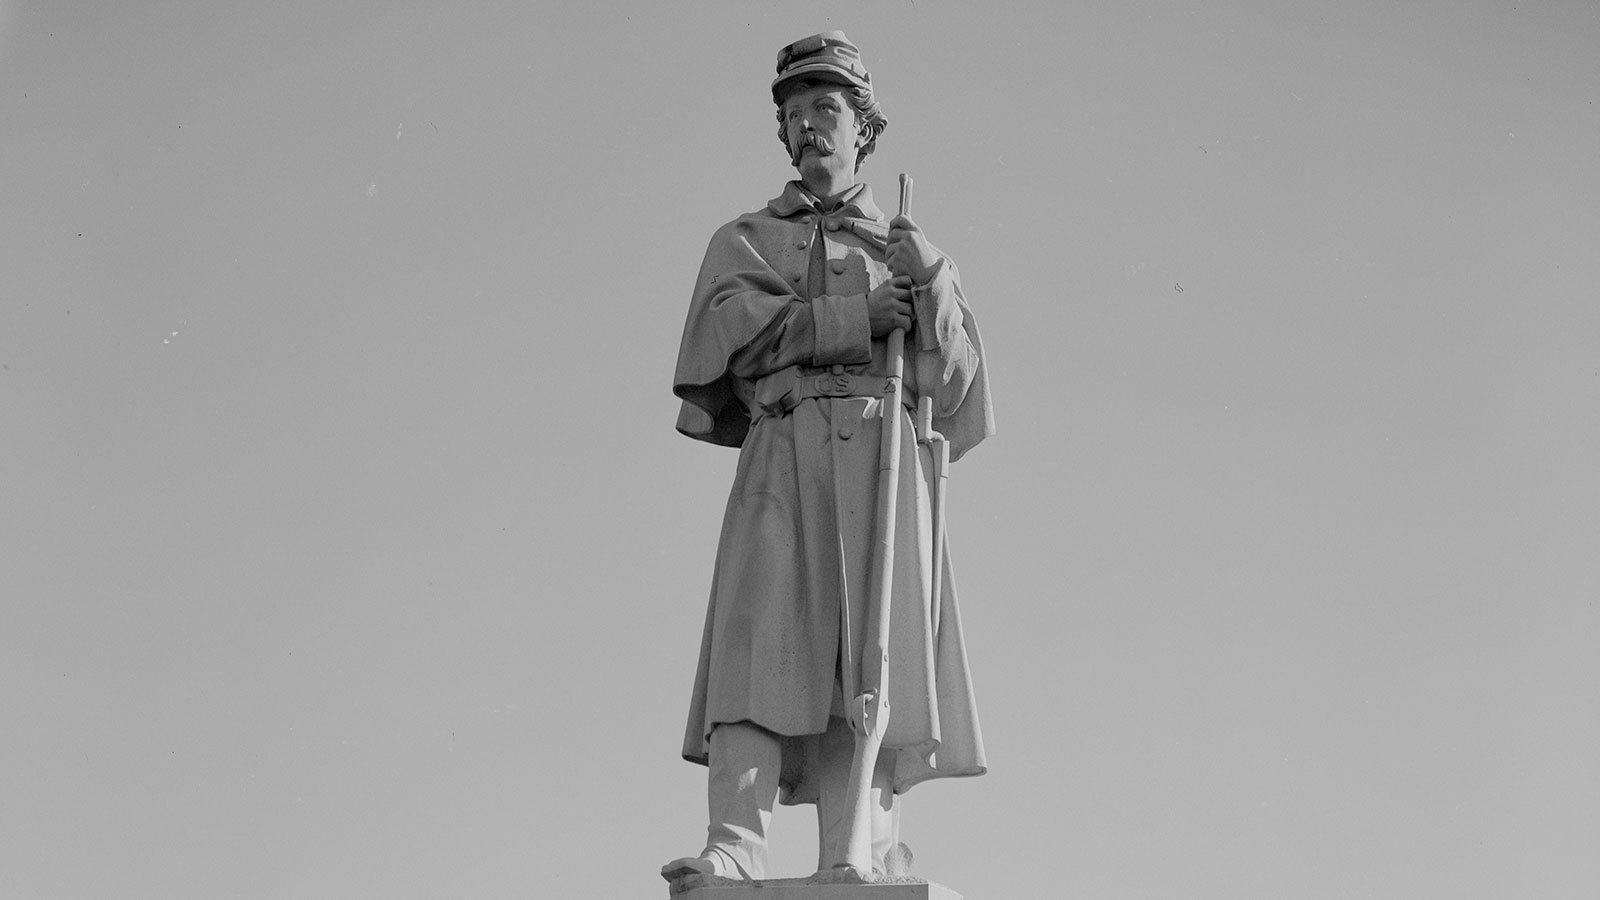 A U.S. Soldiers Monument at Antietam National Cemetery